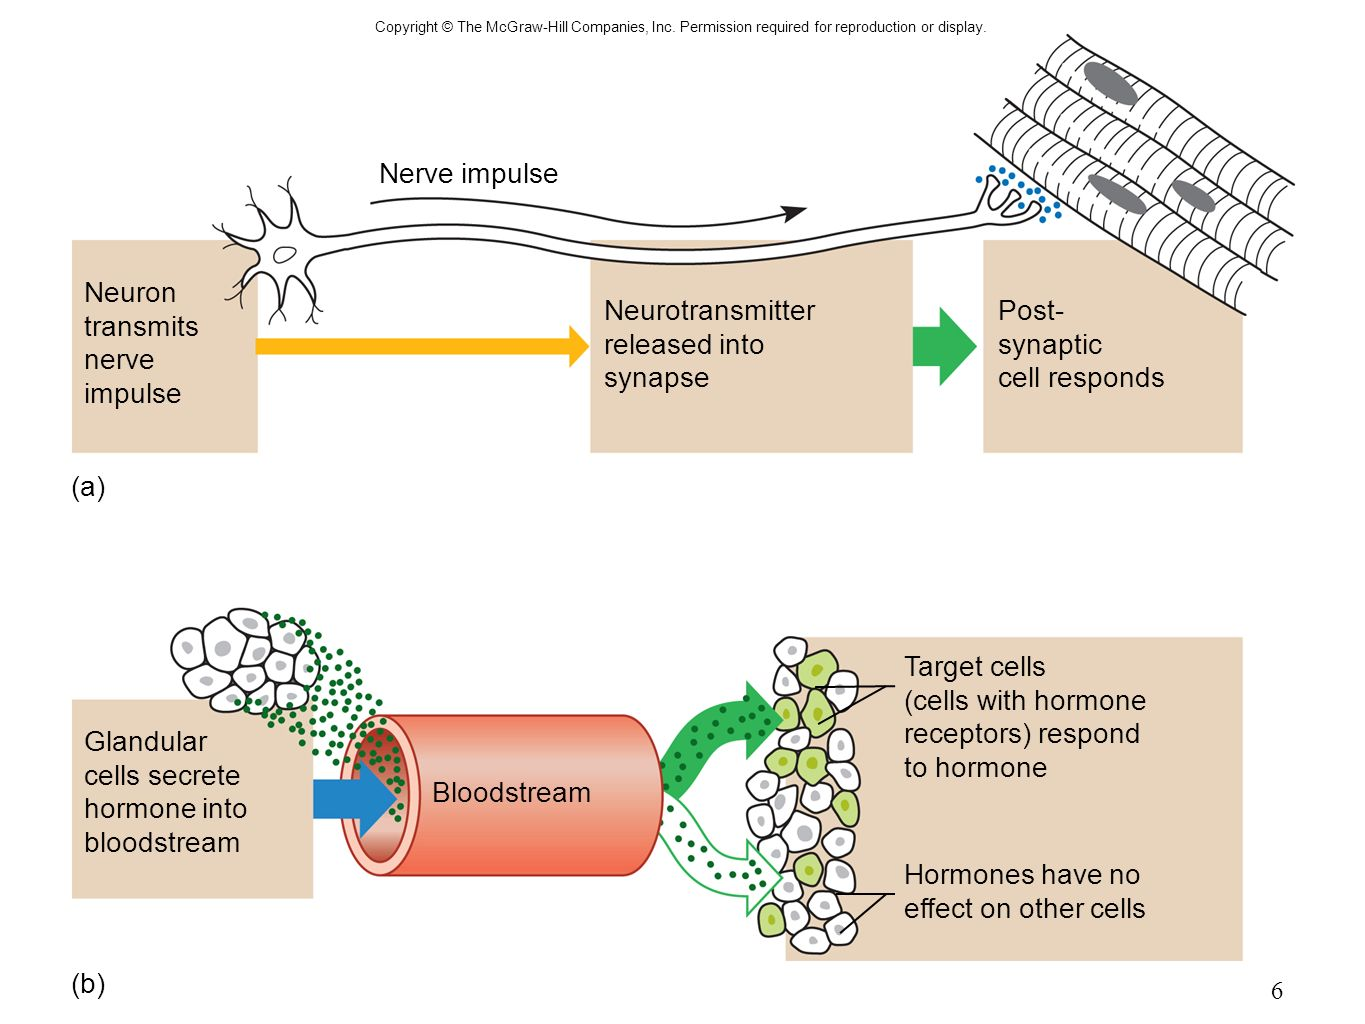 explain the mechanism of nerve impulse transmission at the synapse Nerve impulses travel directly across connected synapses via how does a nerve impulse cross a synapse a: nerve impulse transmission explain how a nerve.